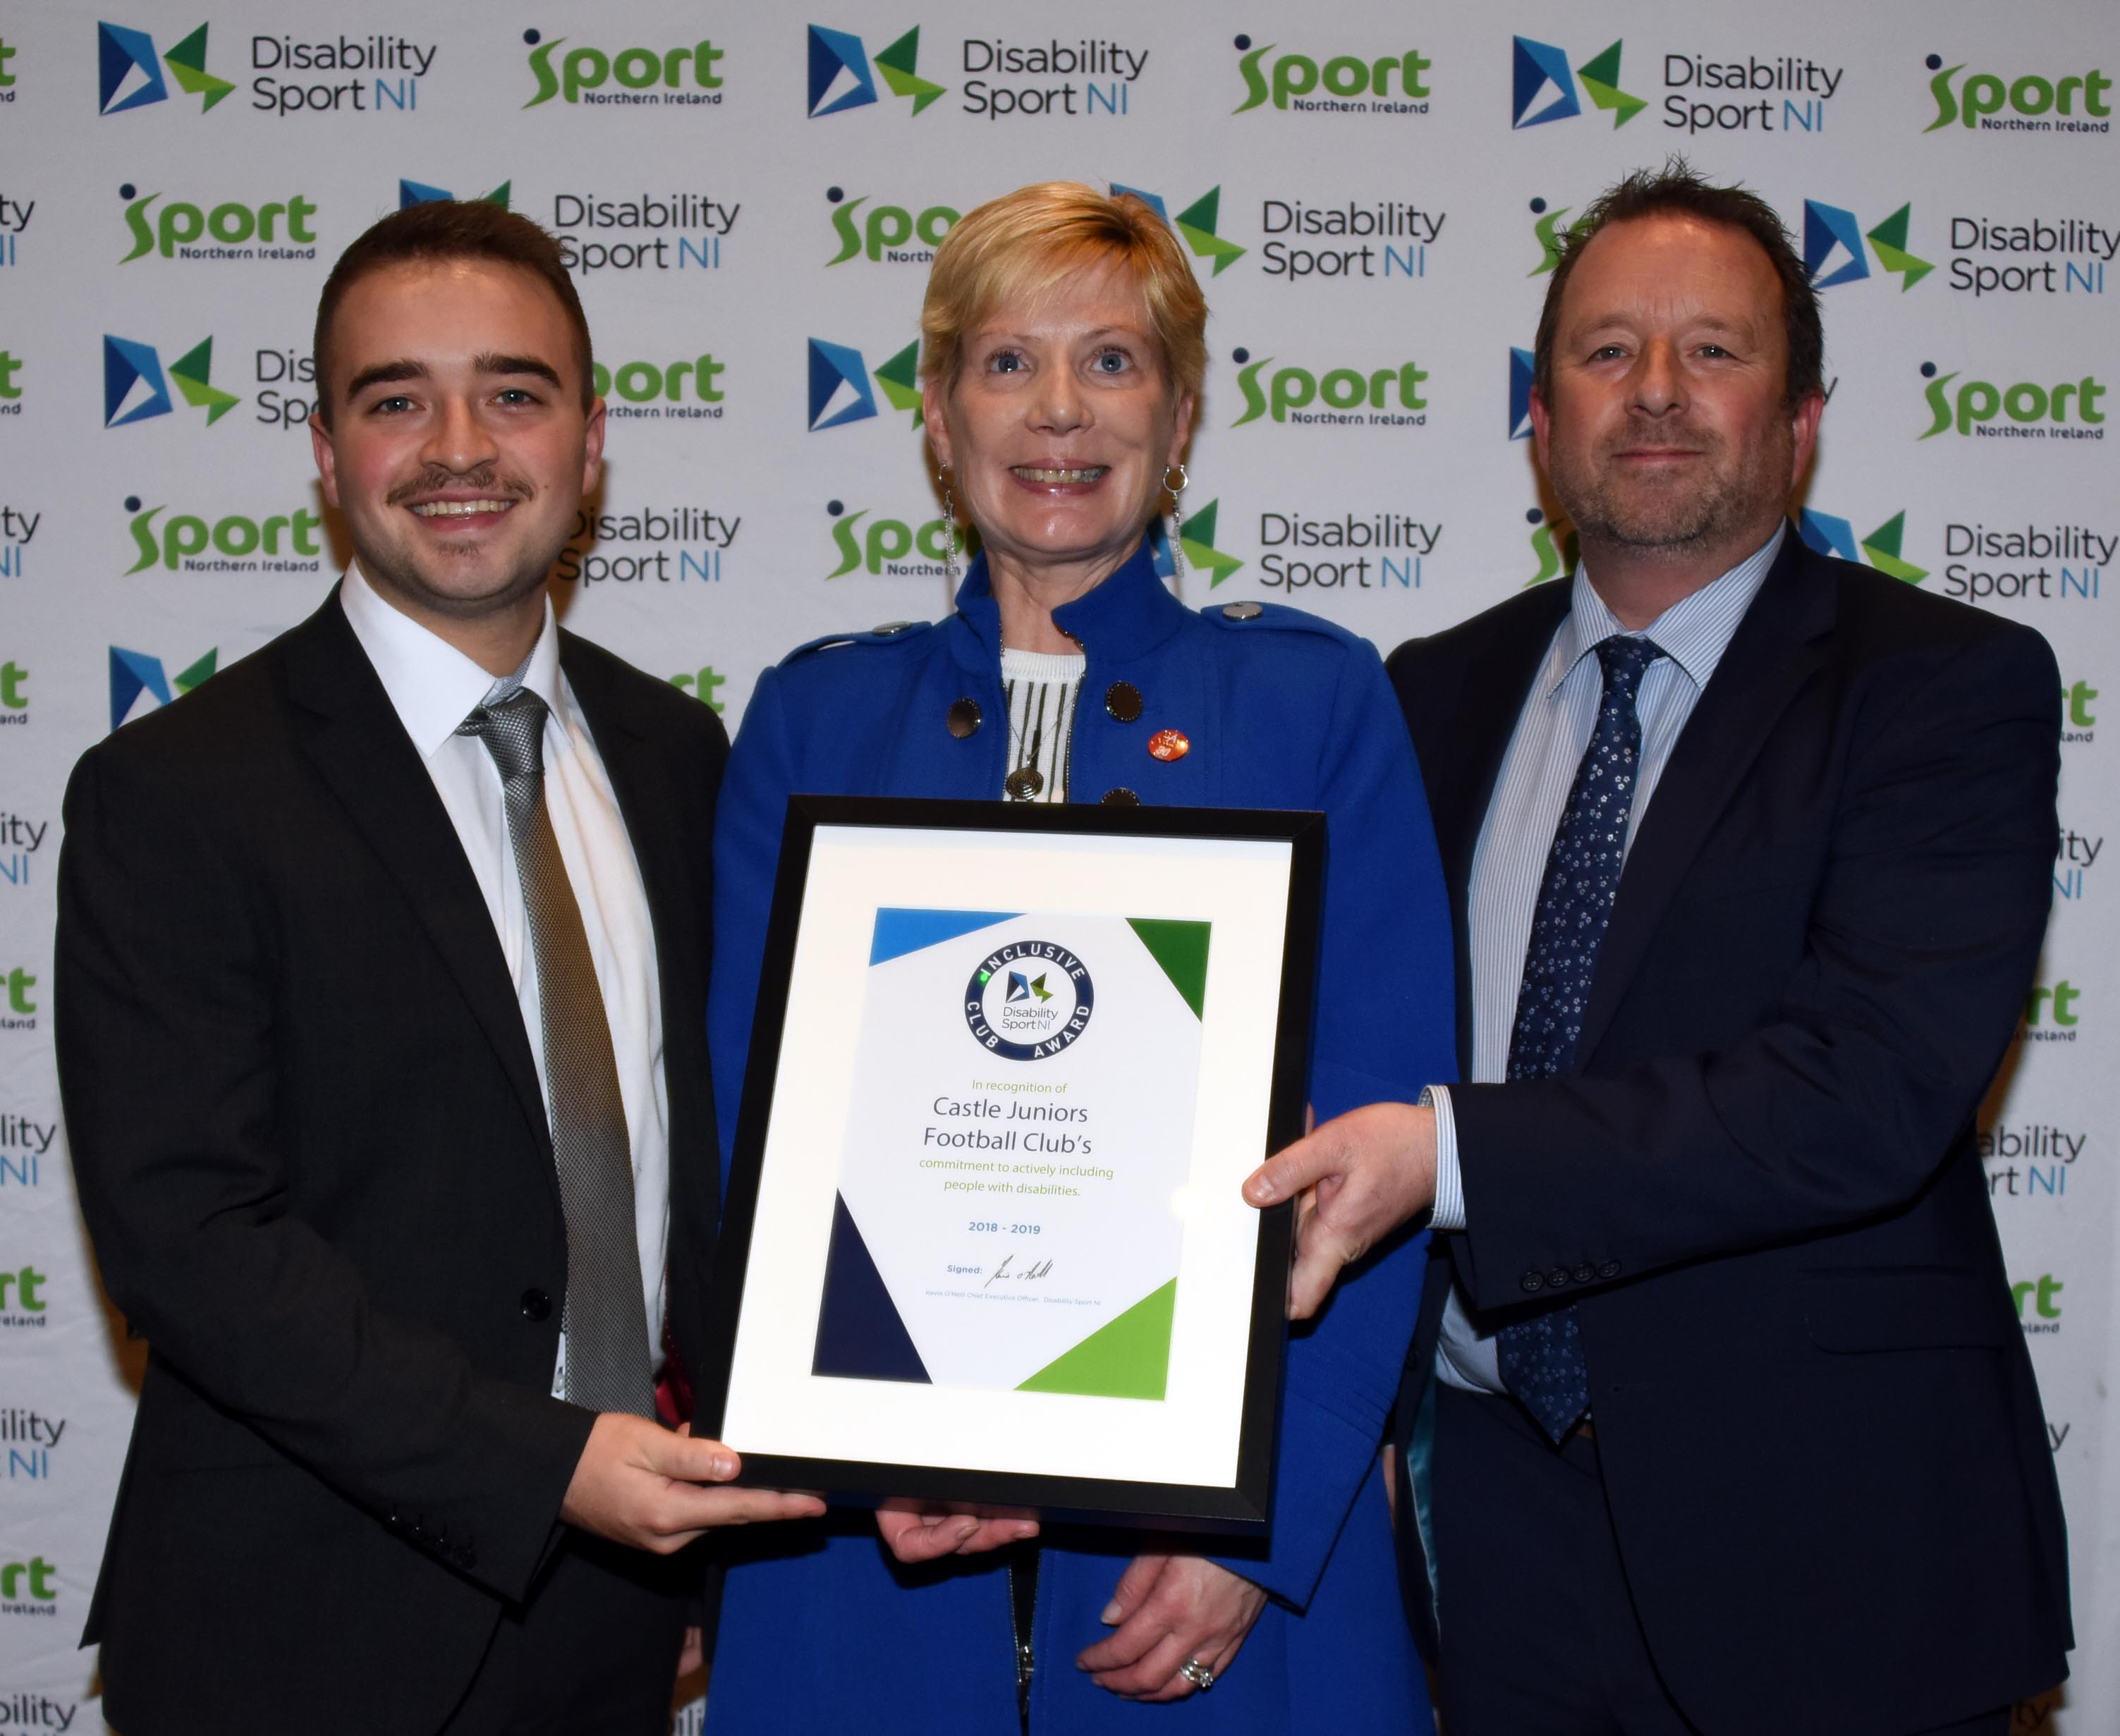 An image of Dr Janet Gray MBE presenting the certificate to Robbie Ried and Trevor Reid from Castle Juniors Football Club